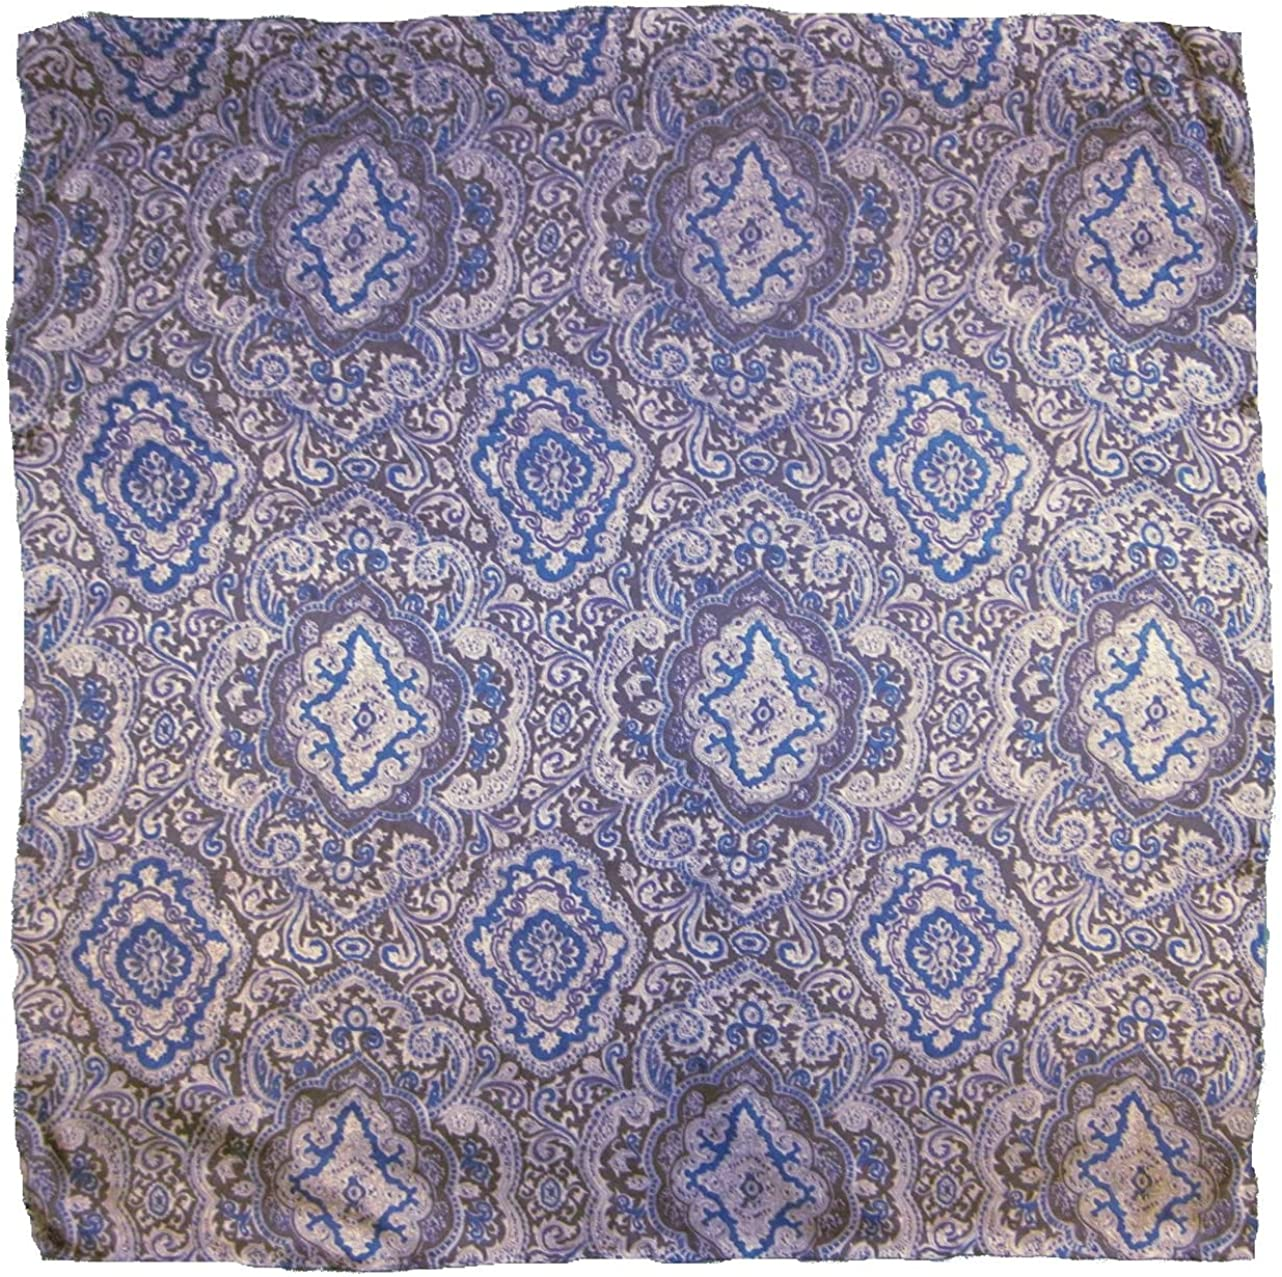 Wyoming Max 77% OFF Traders Mens Paisley Purchase Silk Wild Silver Rag Scarf Blue Mul